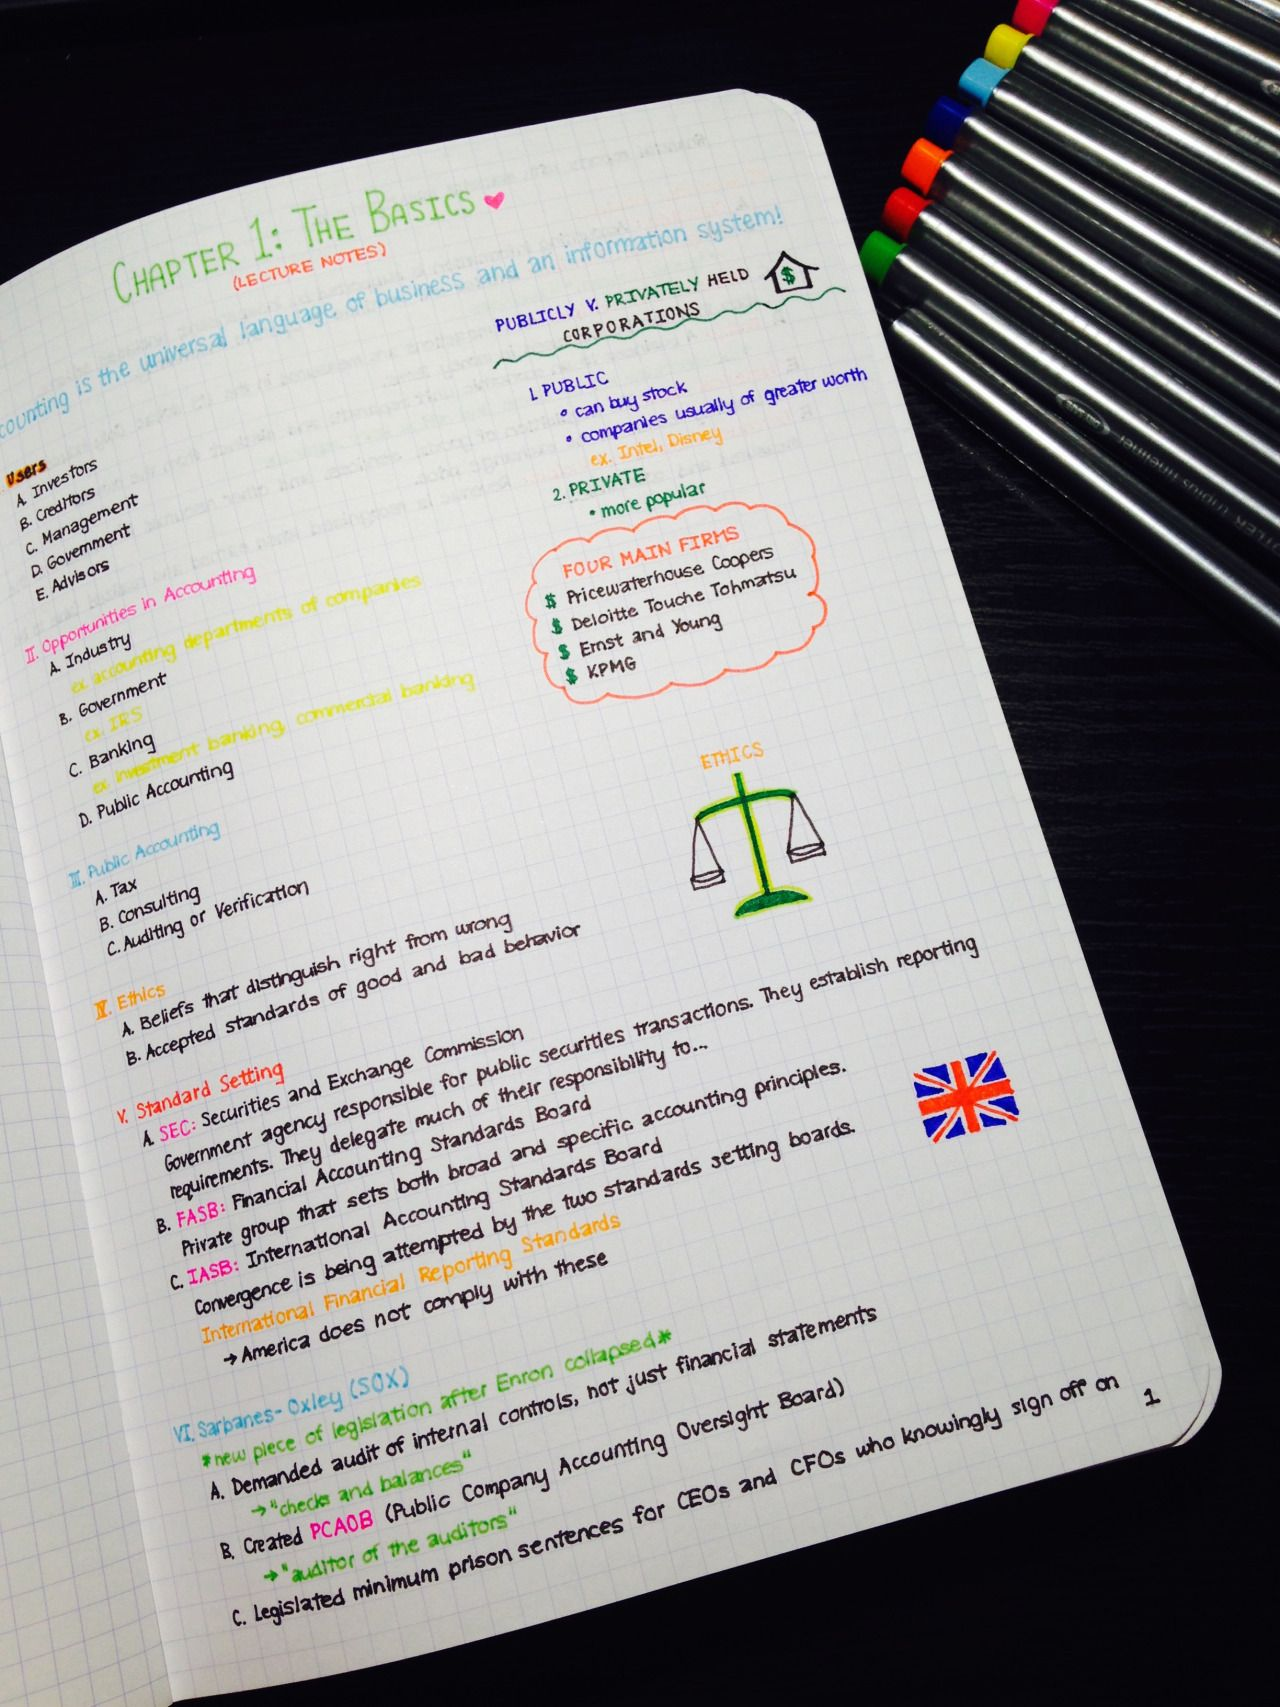 aspiringactuary 07 06 15 copying accounting lecture notes in aspiringactuary 07 06 15 copying accounting lecture notes in to my new notebook